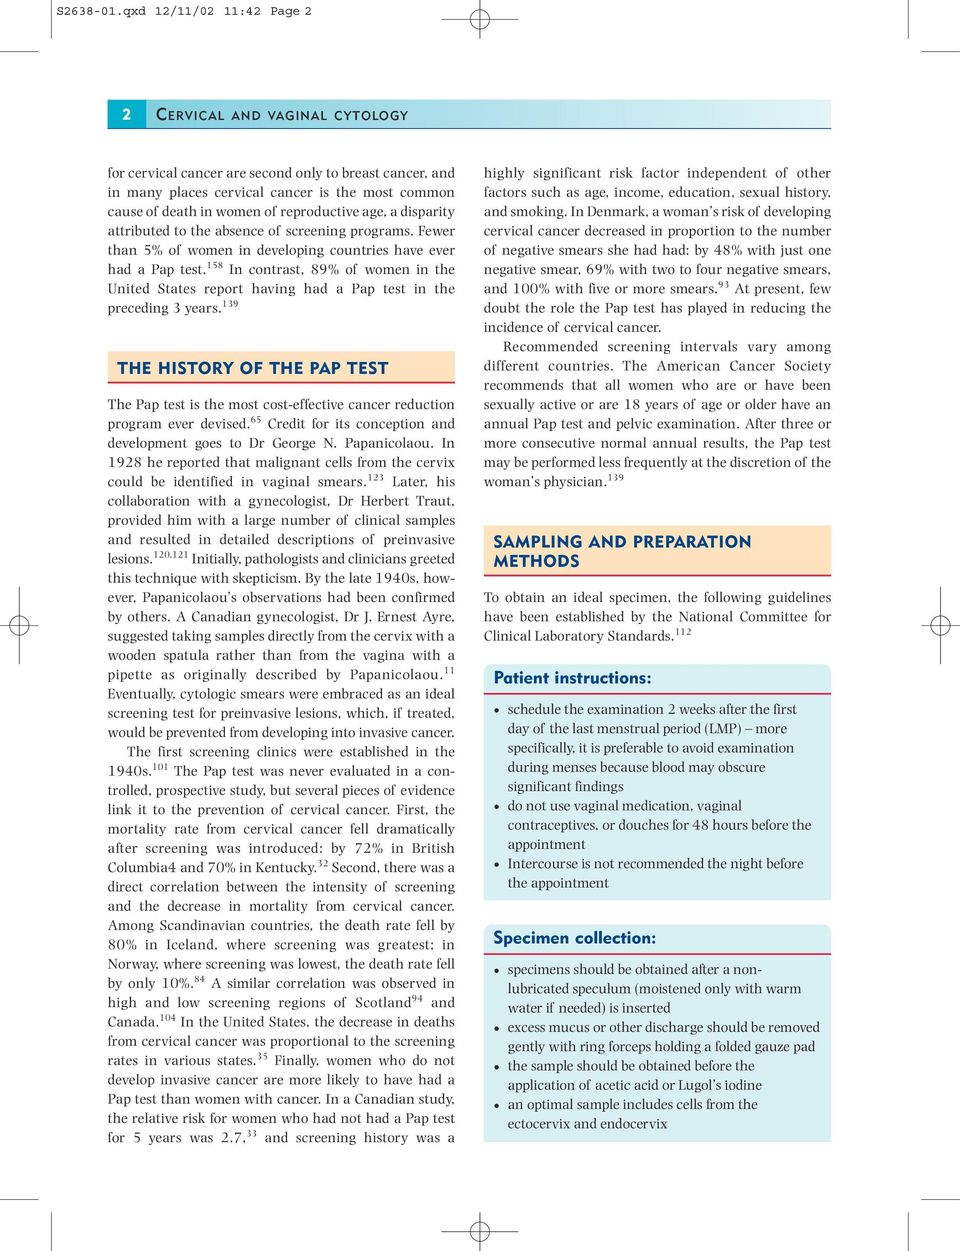 Cytological examination of the cervical canal or pap-test in women